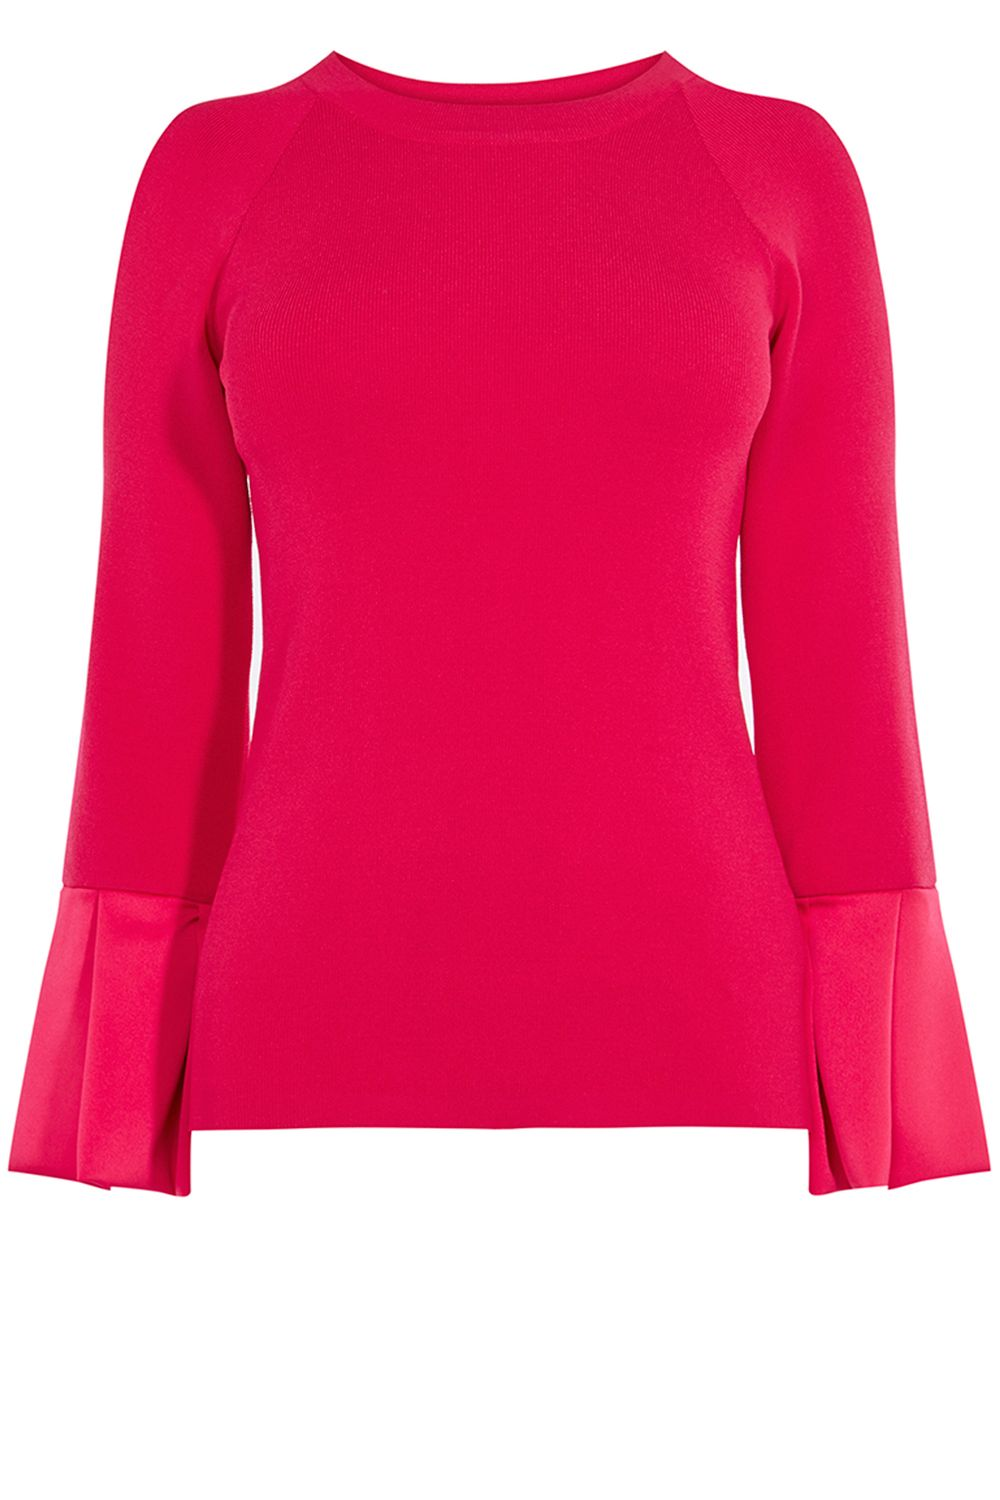 Coast Rosie Knit Top, Pink